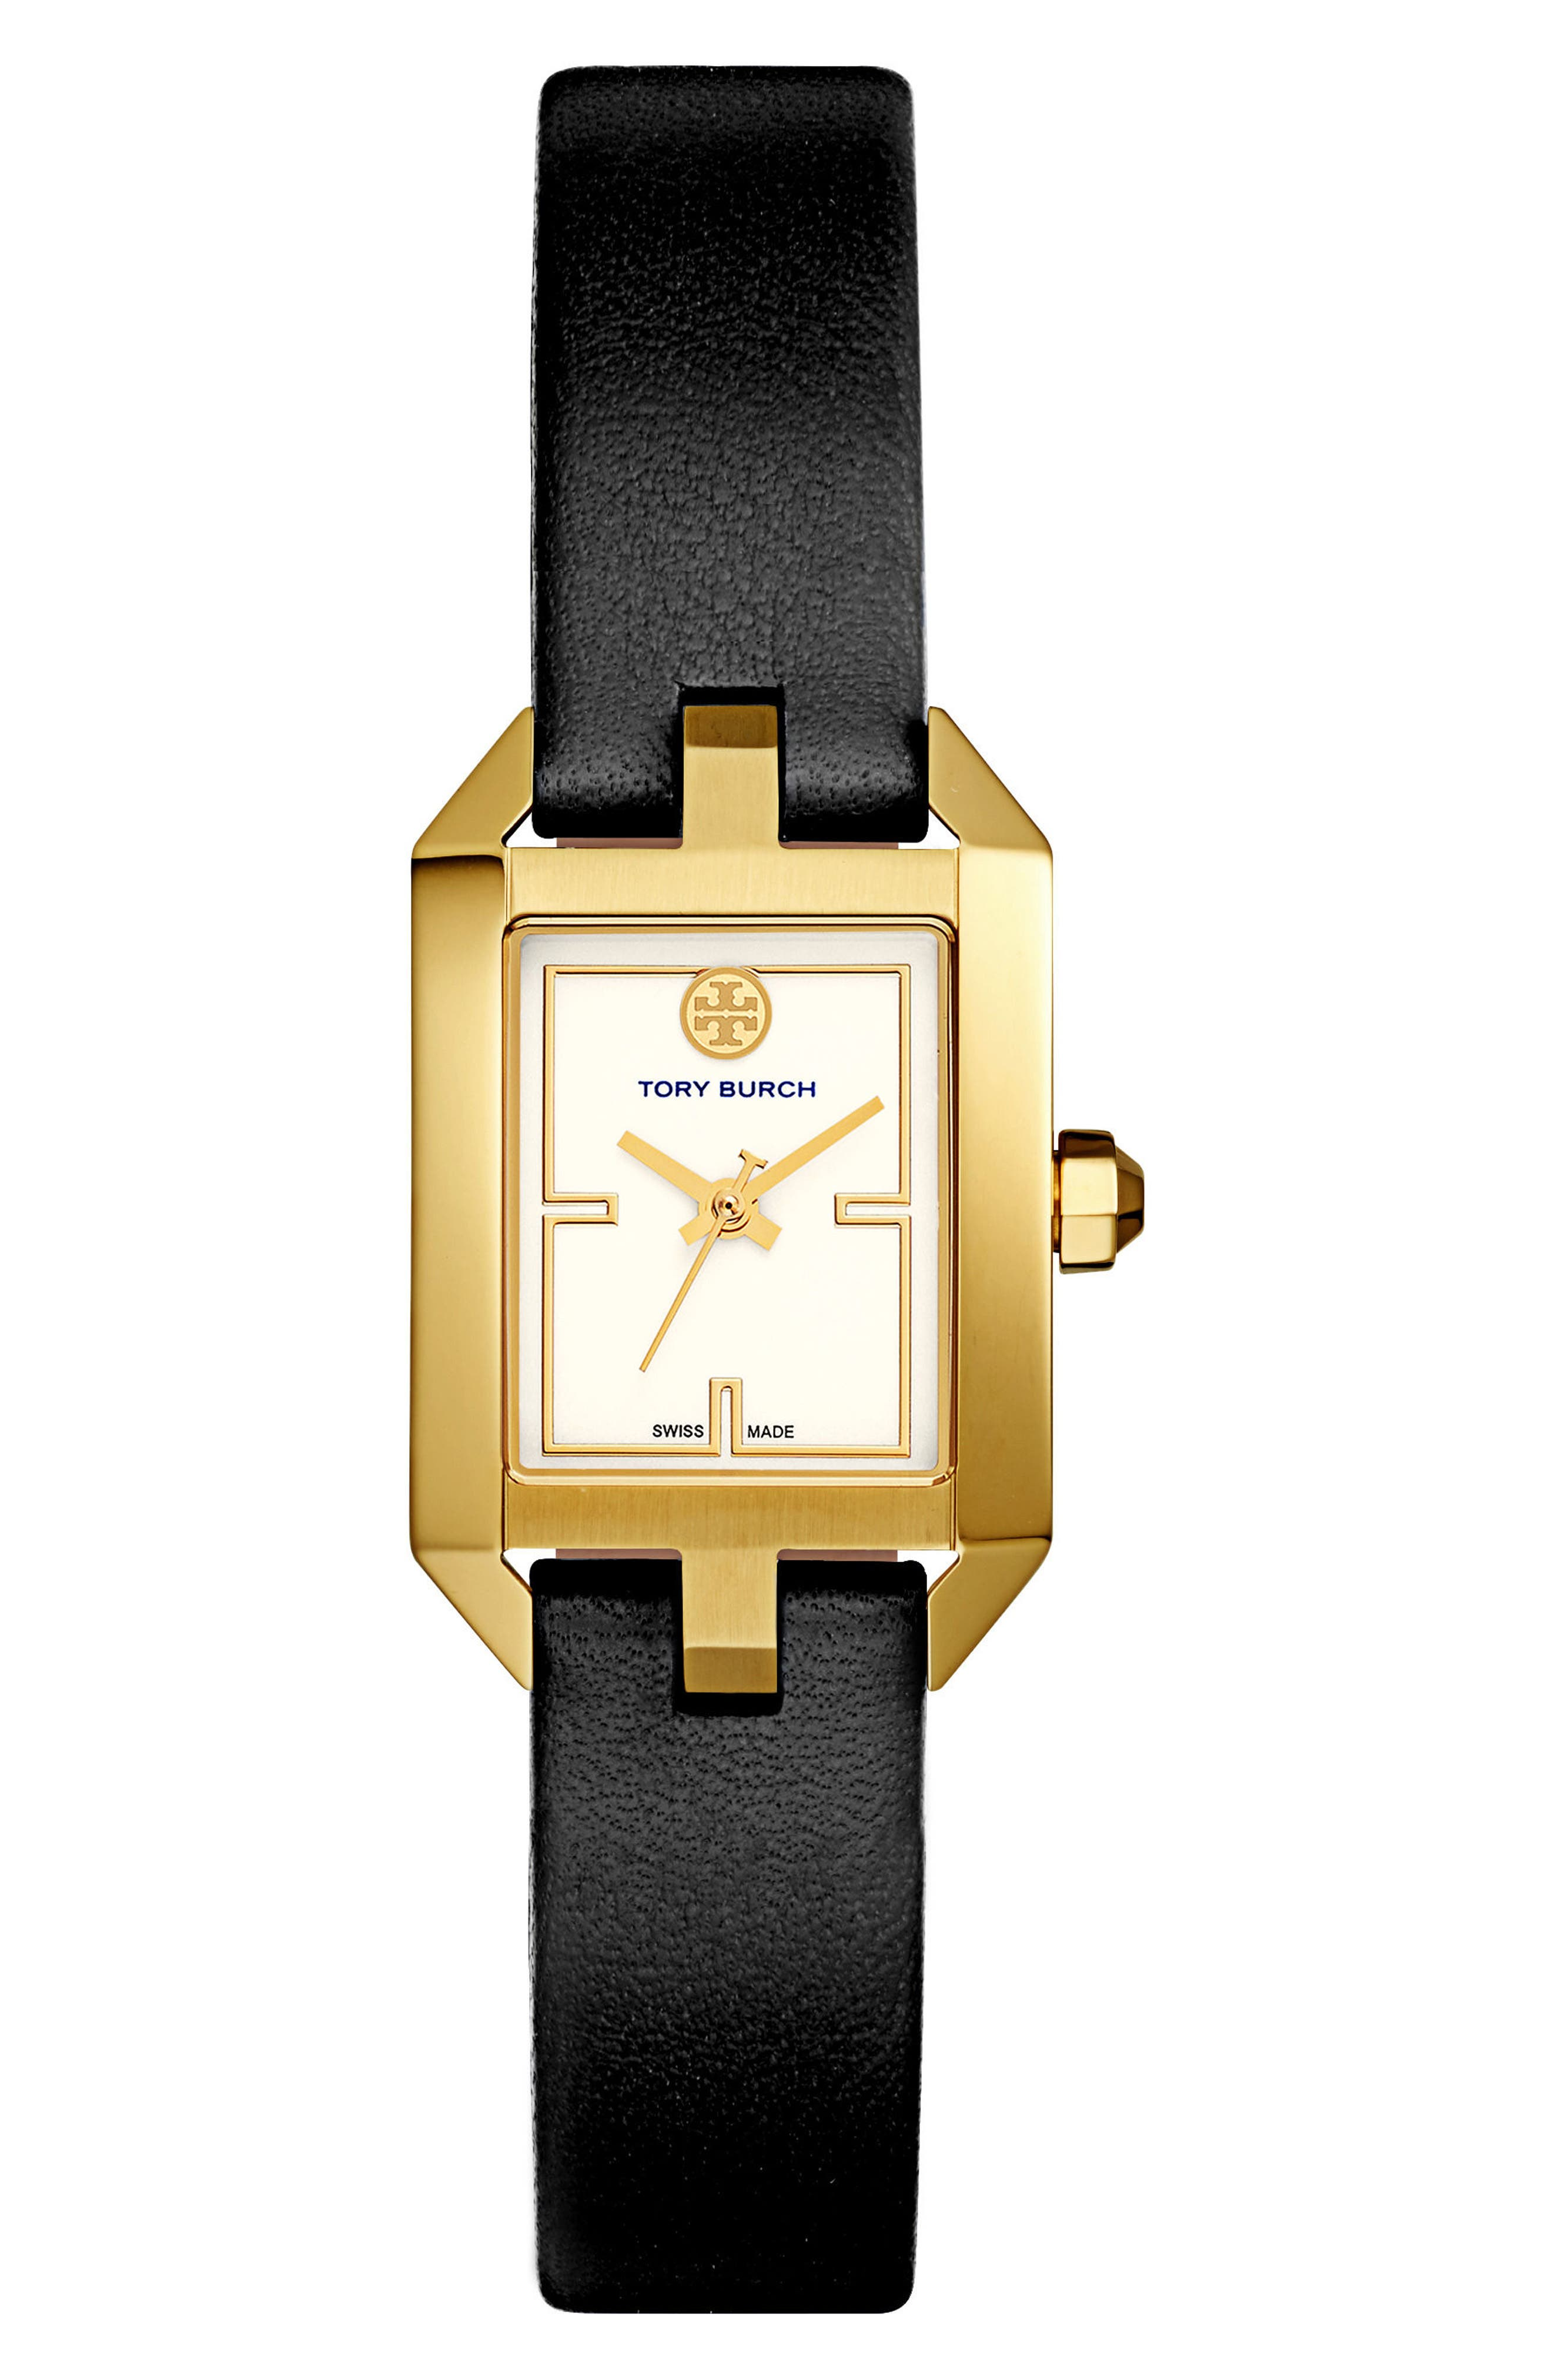 Main Image - Tory Burch Dalloway Leather Strap Watch, 21mm x 24mm